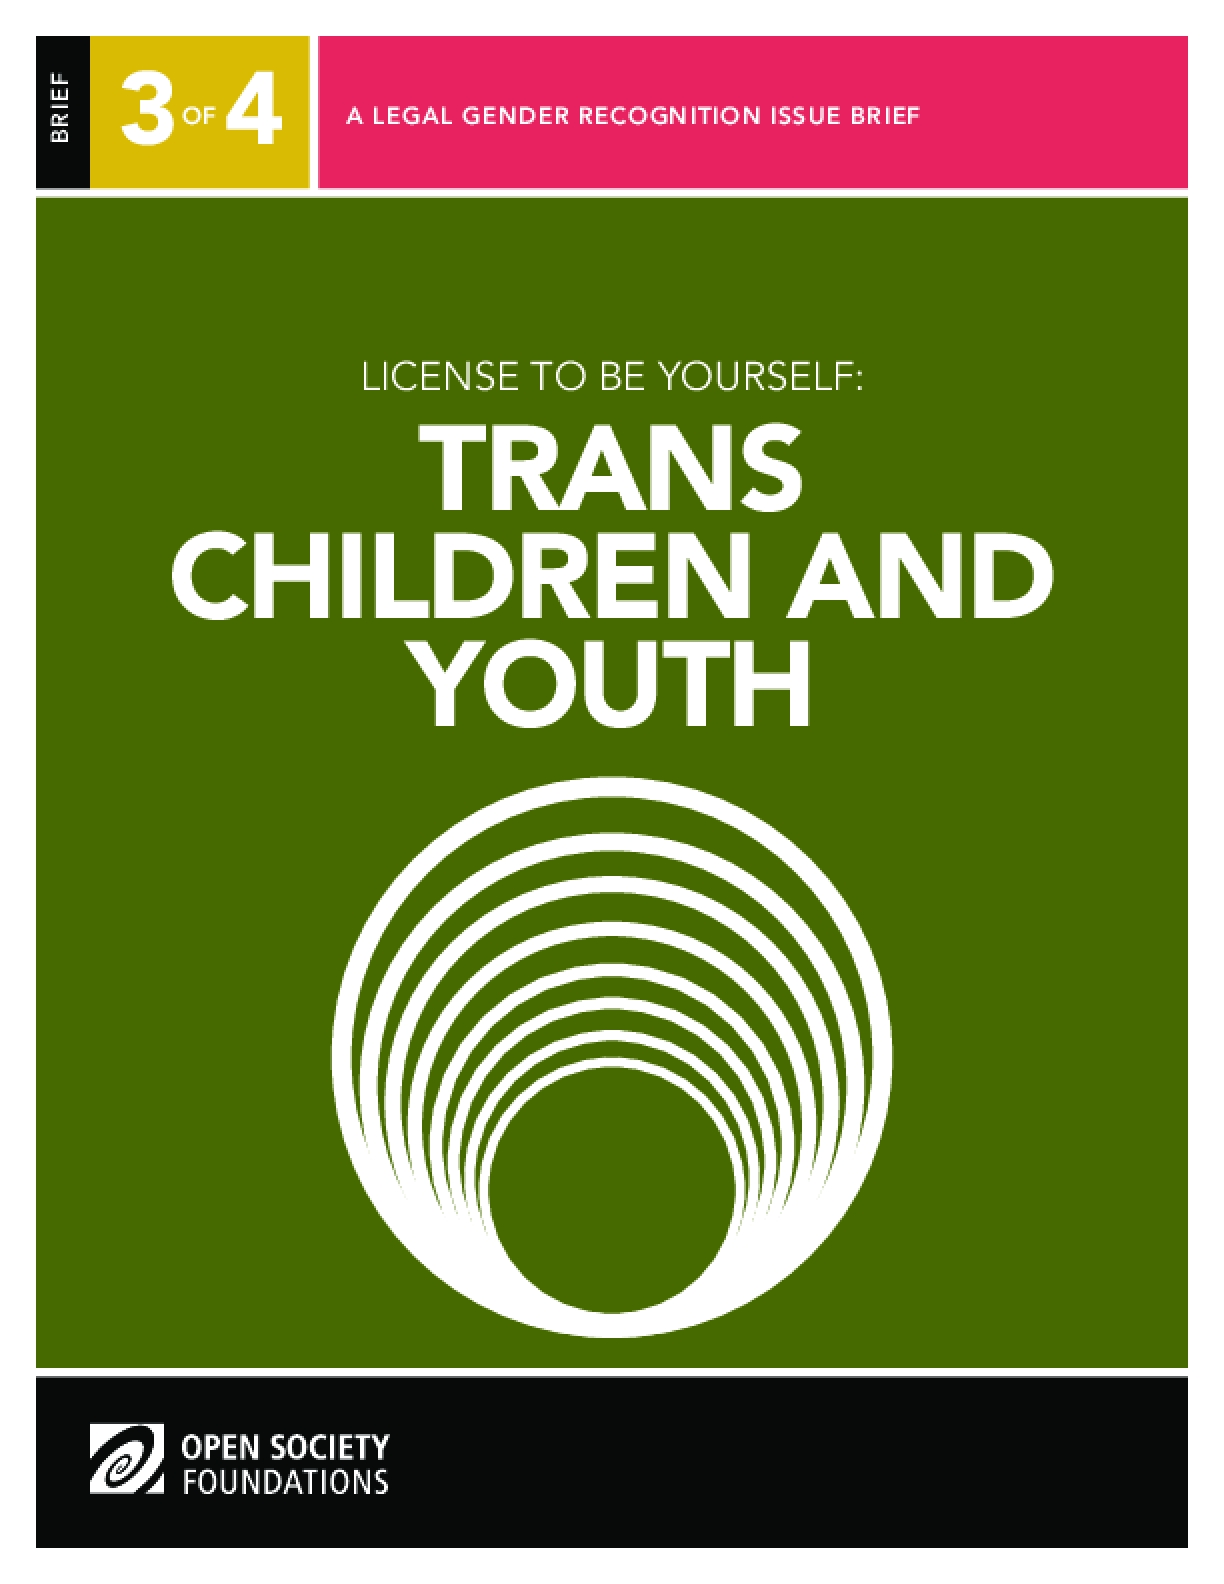 License to Be Yourself: Trans Children and Youth